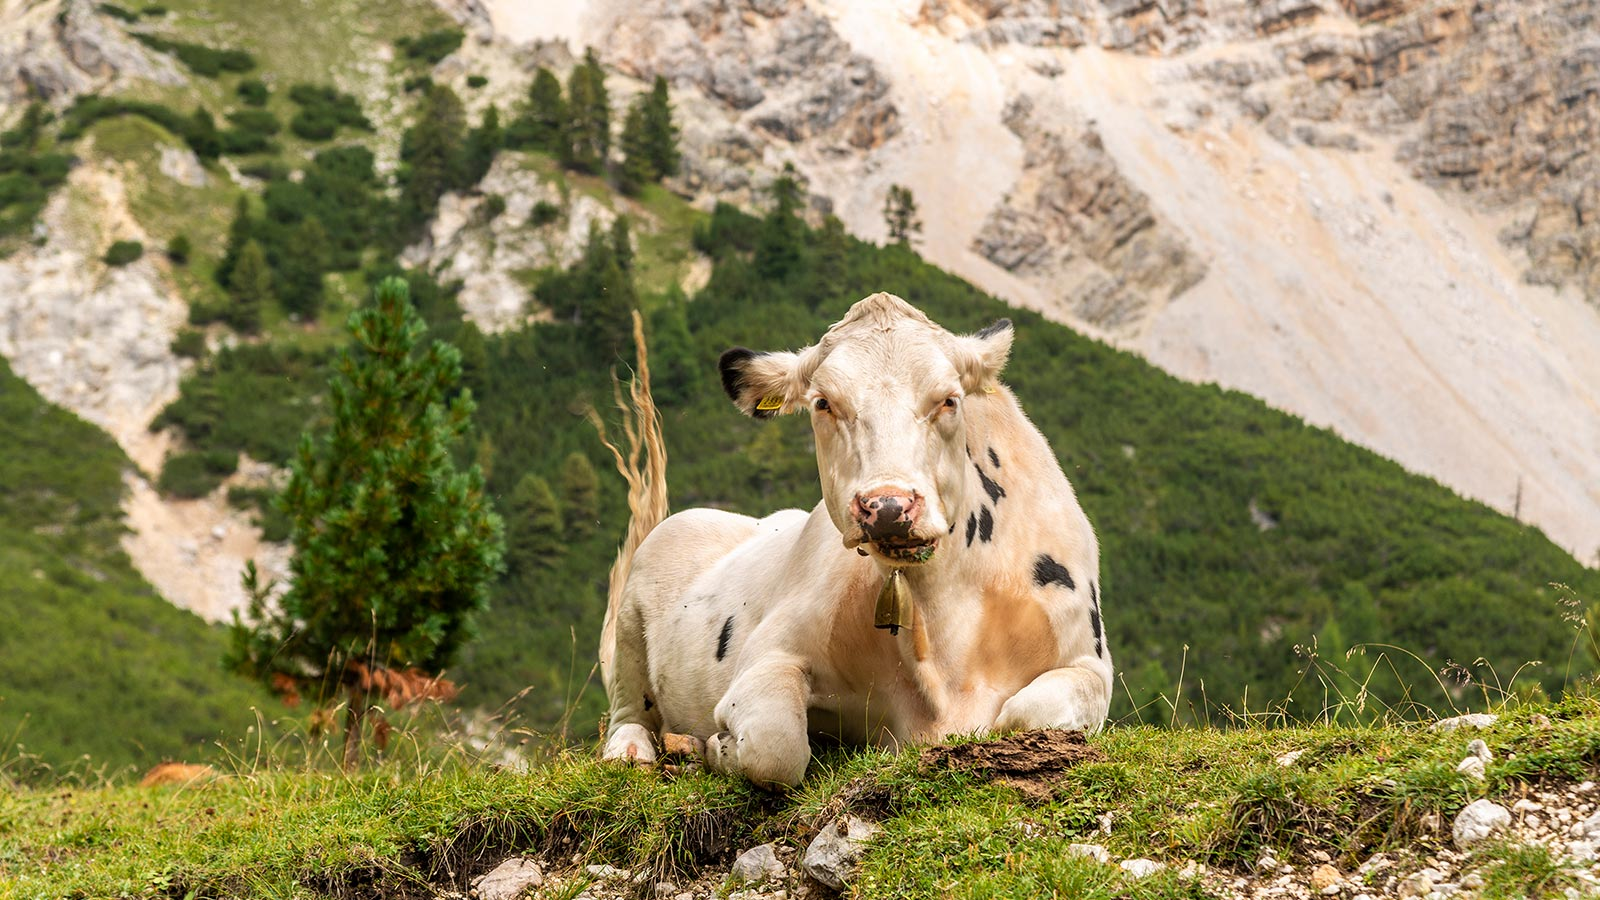 A cow sits on the grass in the Fanes-Senes-Braies Natural Park